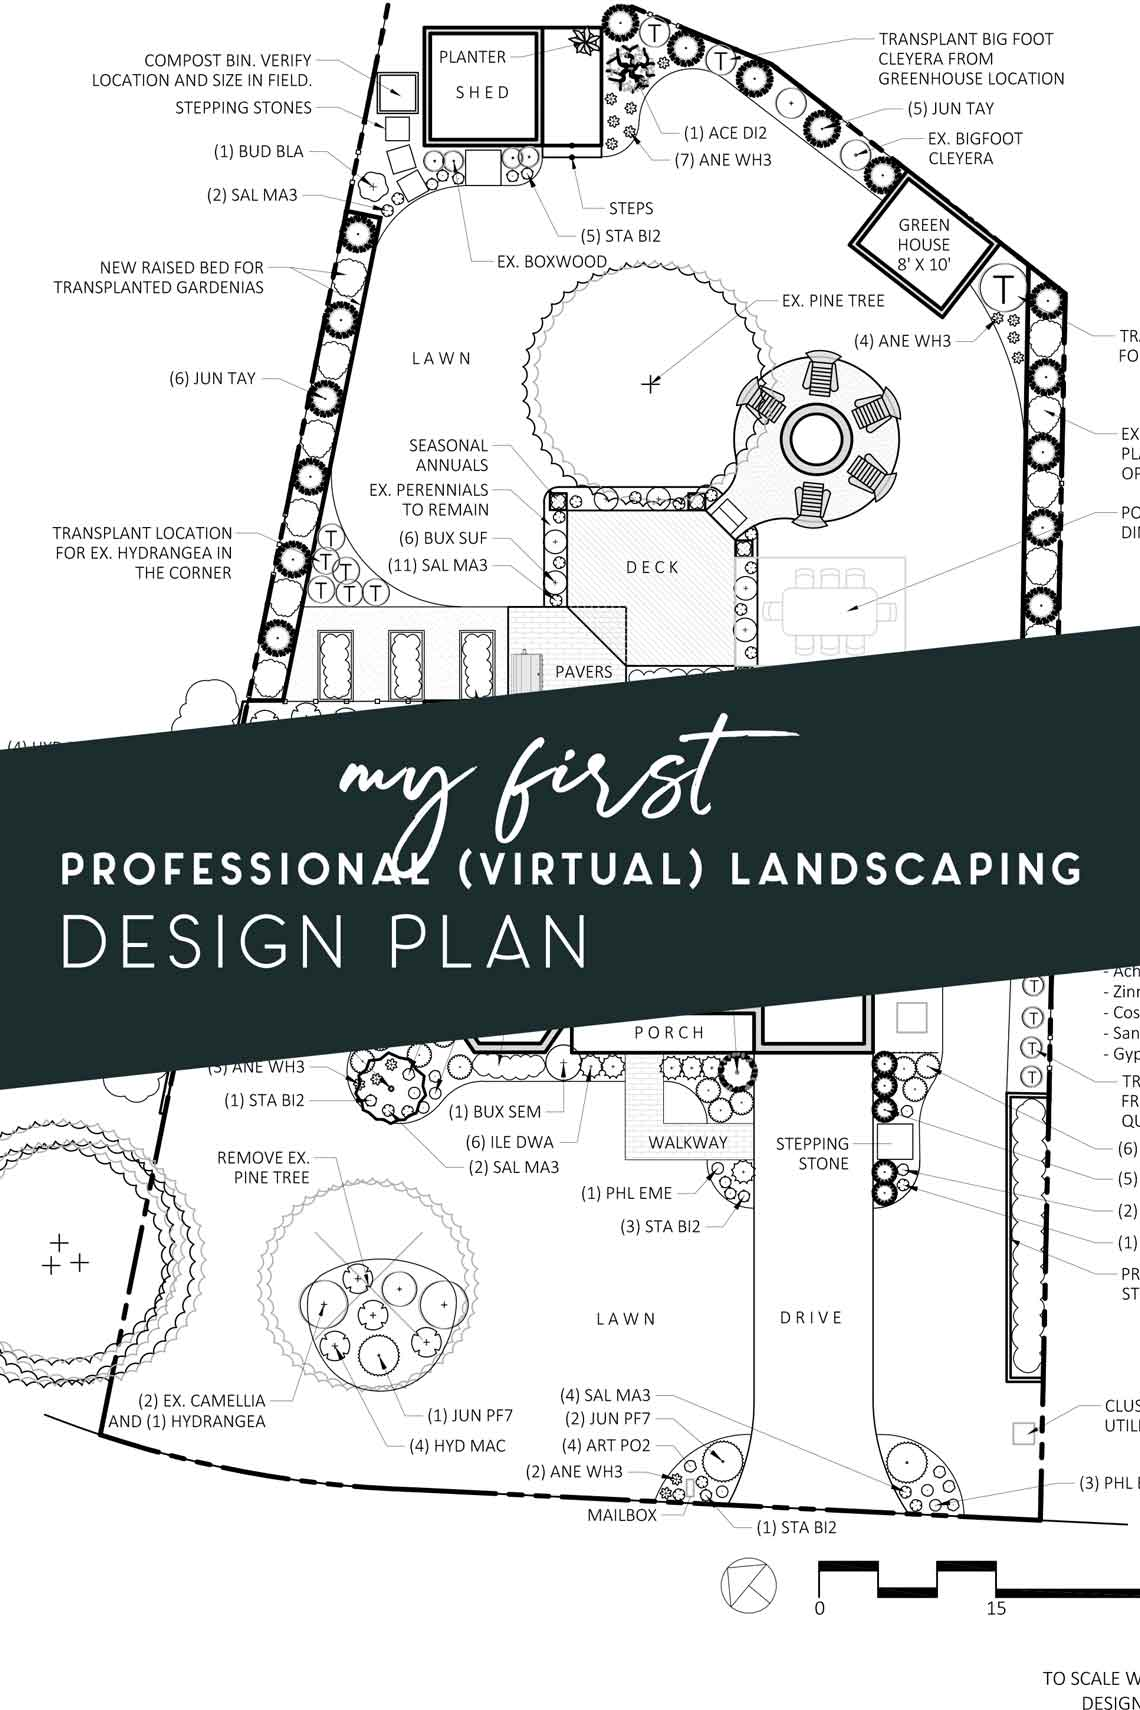 professional virtual landscaping design plan